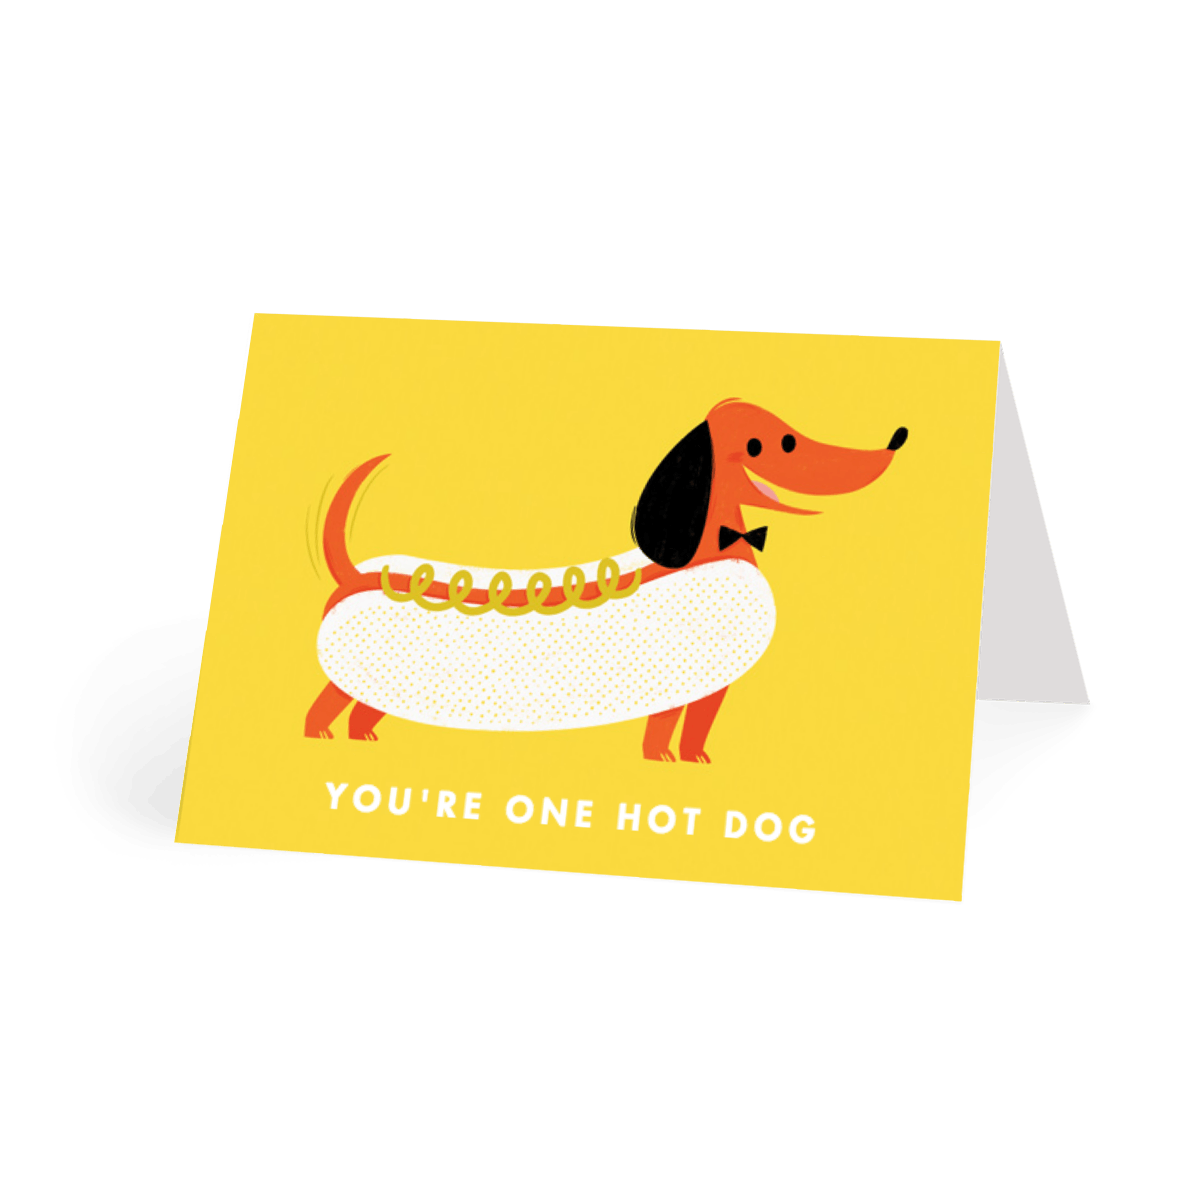 Https%3a%2f%2fwww.papier.com%2fproduct image%2f4858%2f14%2fhappy hot dog 1259 front 1518626580.png?ixlib=rb 1.1